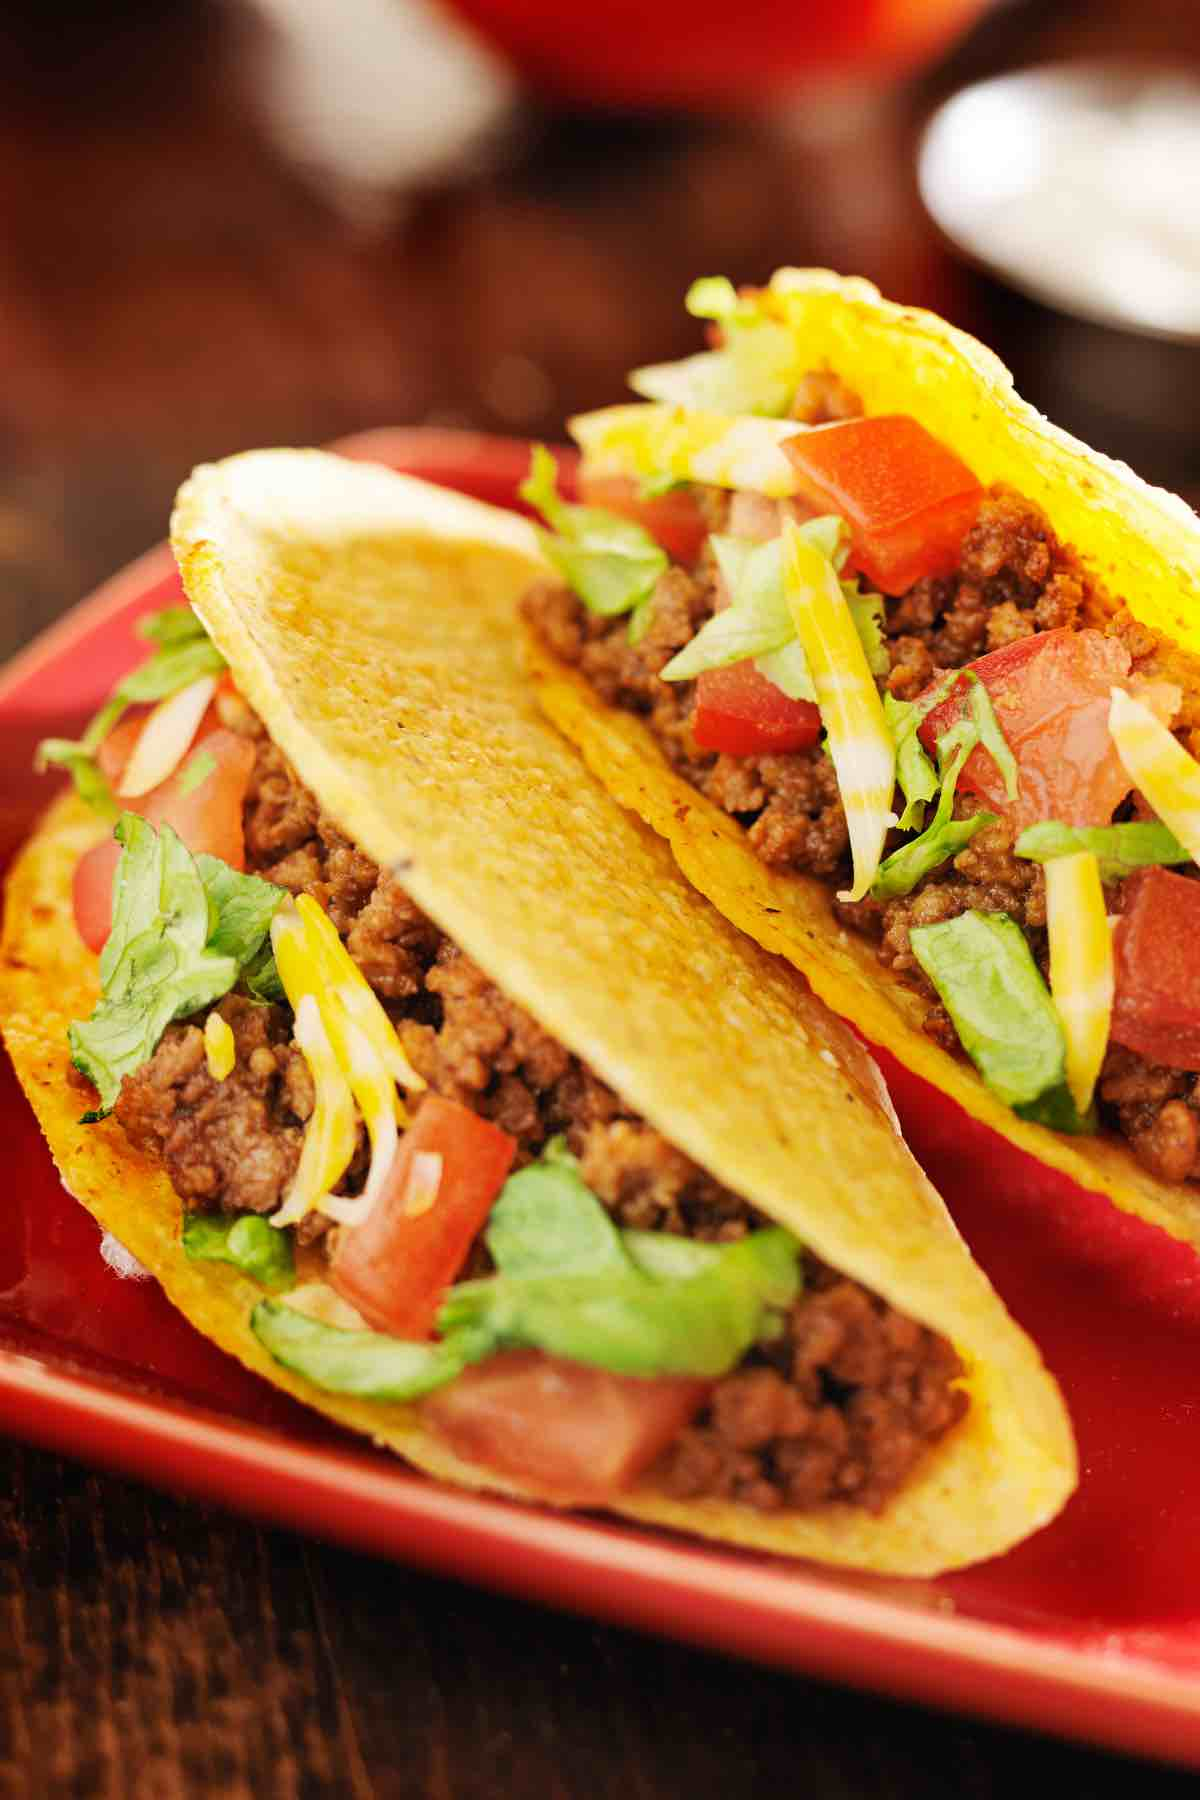 Tacos are one of the most popular Mexican foods. Great Taco Toppings will take your love for tacos to a new level! Great for Cinco De Mayo or Taco Tuesday! We've collected the best taco topping ideas from basic options like guacamole and shredded cheese to chicken, fish, and pork, including ones that are gluten-free and keto-friendly!